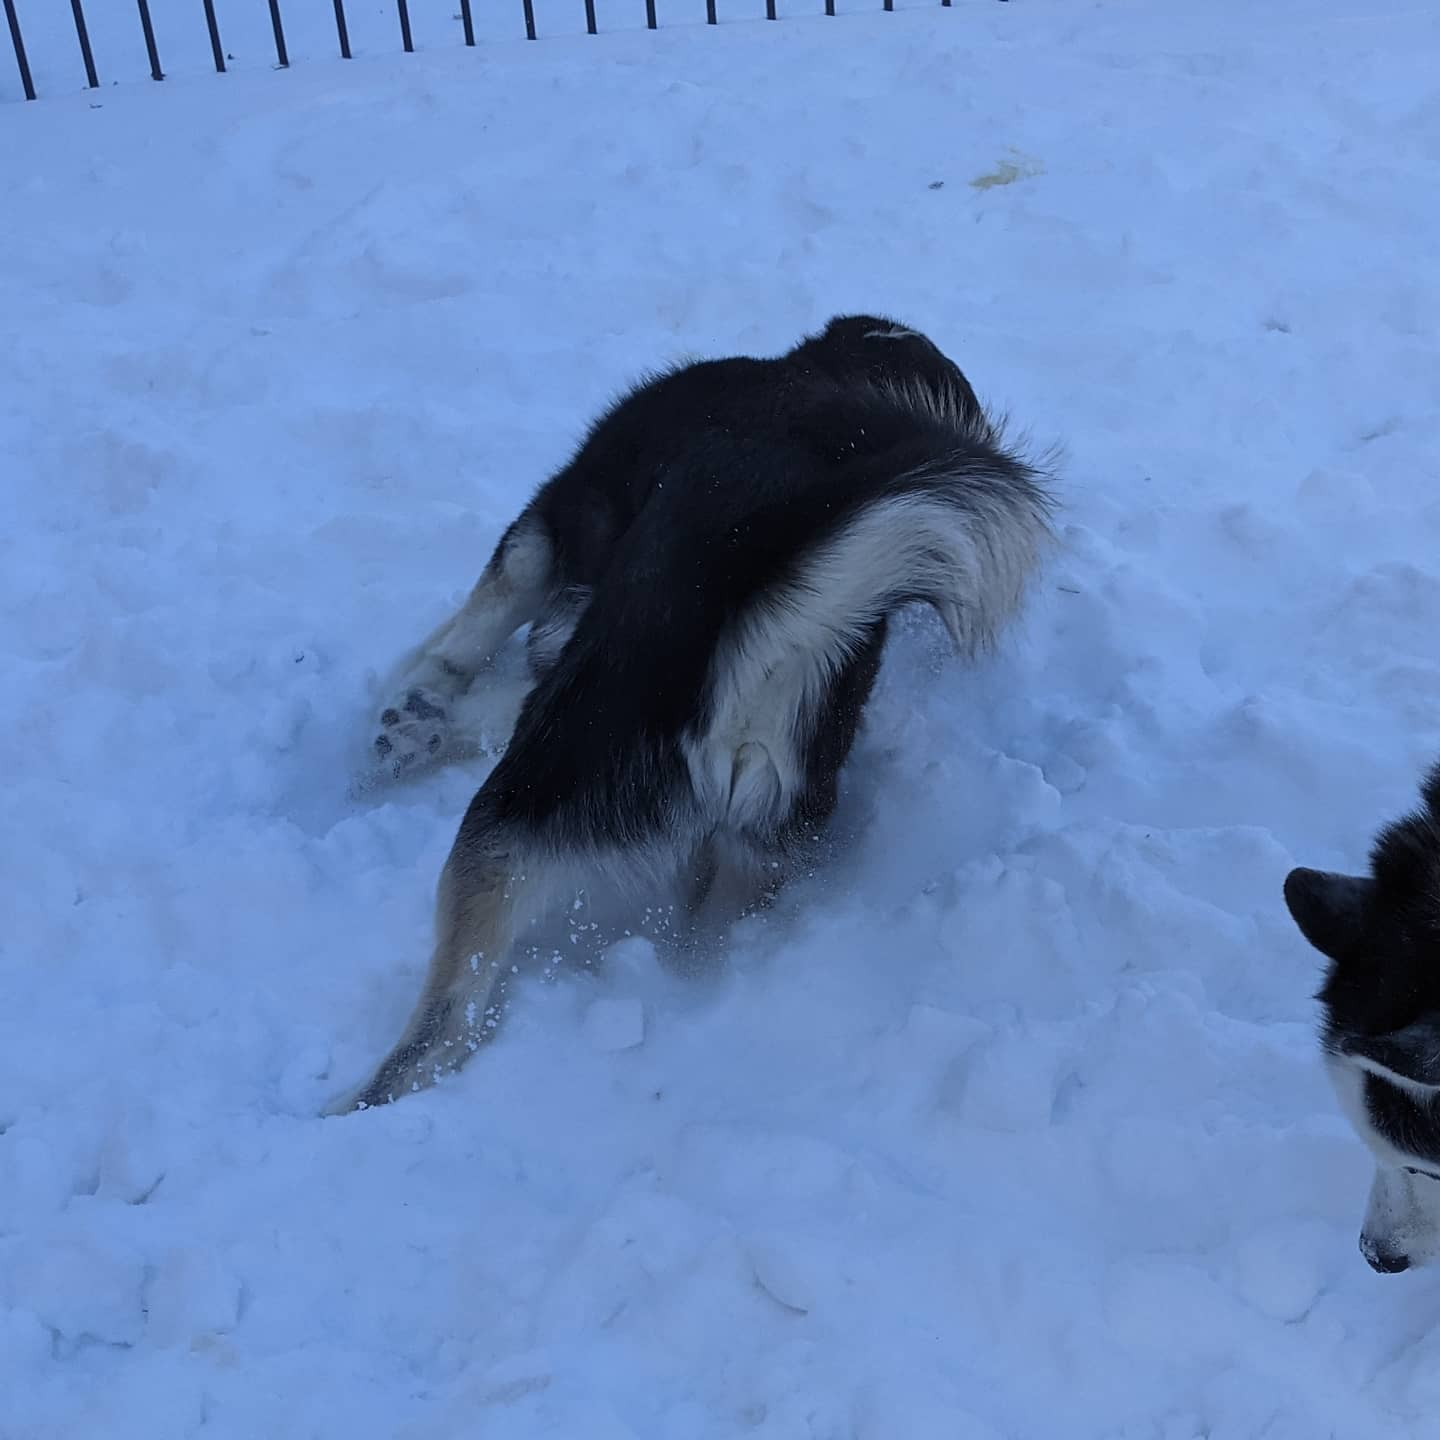 And here is Nanuq diving headfirst into the snow #huskiesofinstagram #siberianhusky #stlnanuq